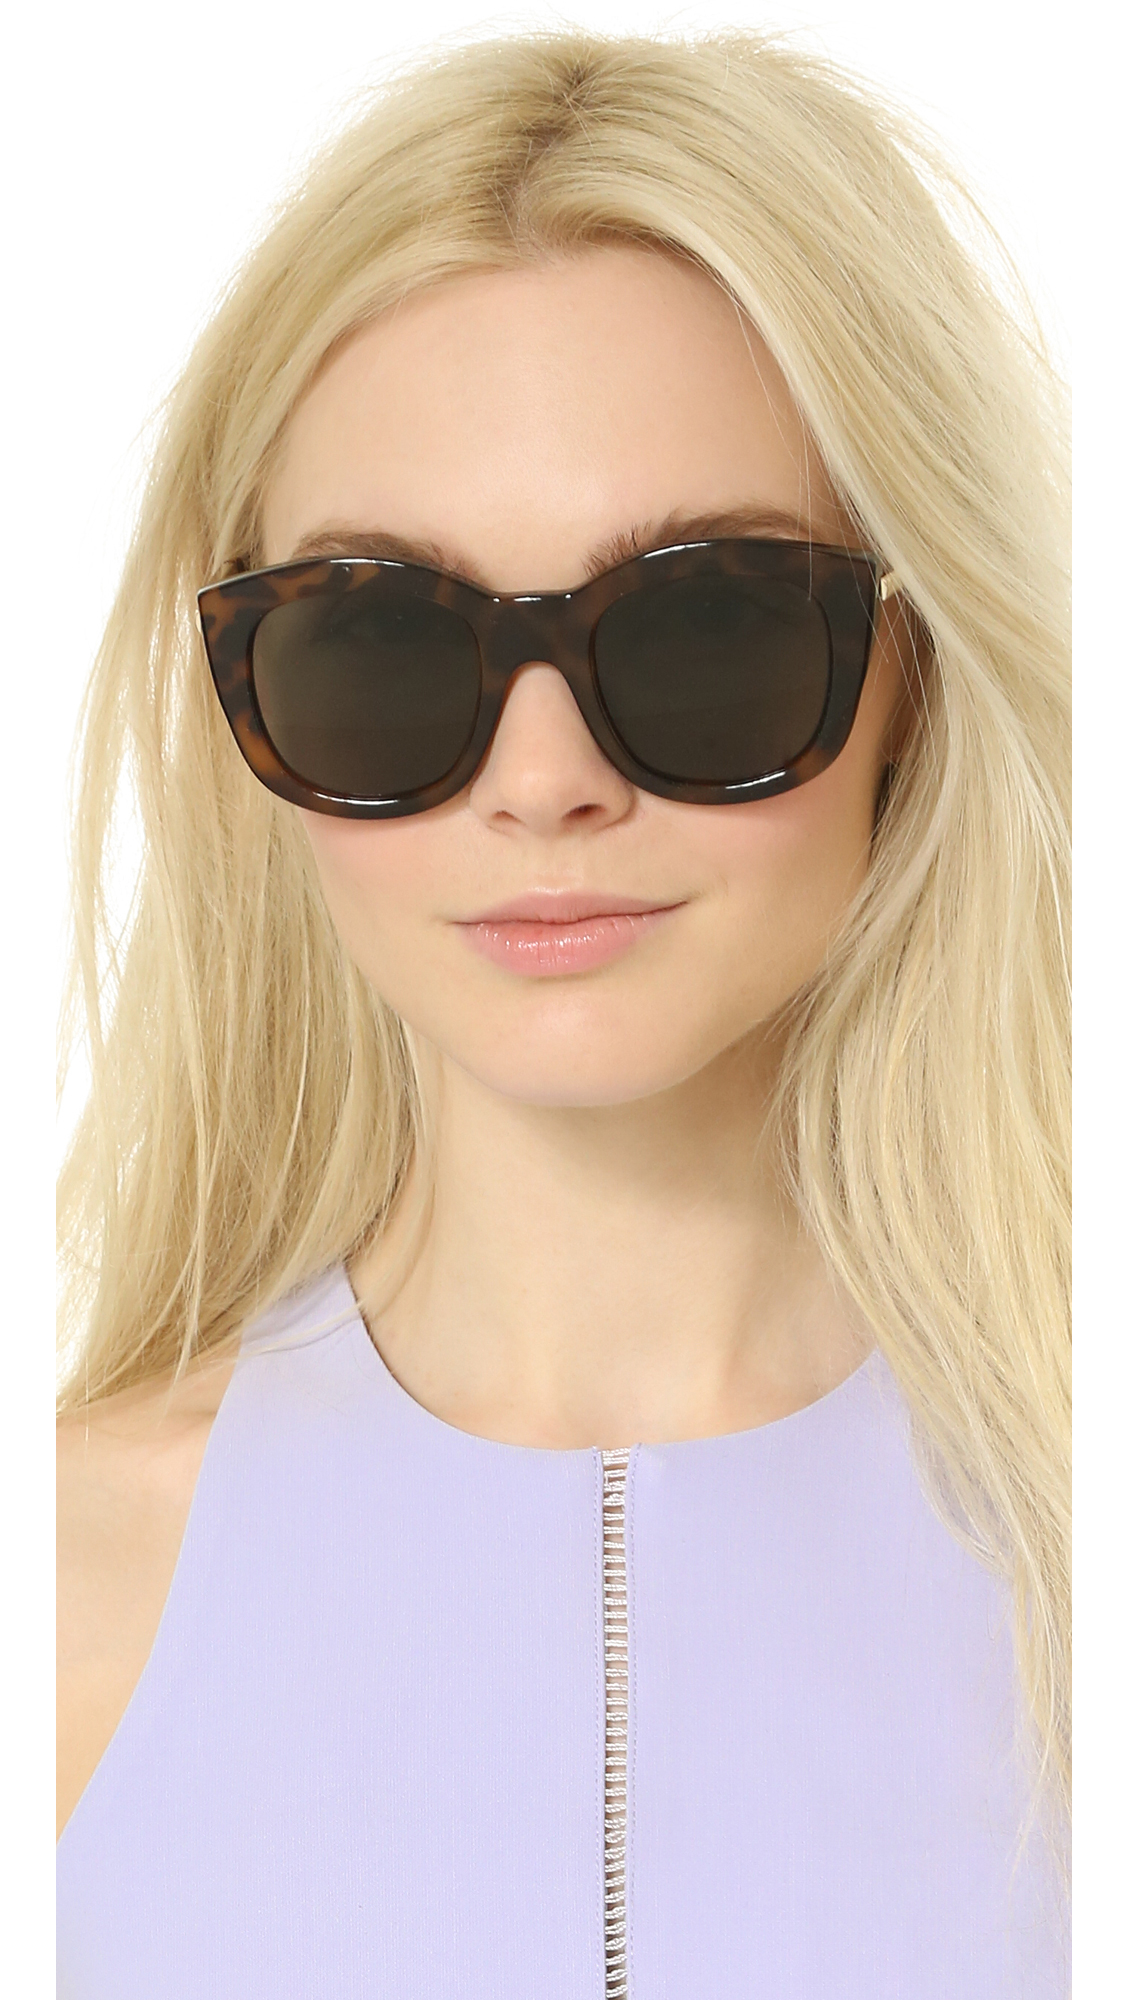 51978a757a5 Lyst - Le Specs Runway Luxe Mirrored Sunglasses - Milky Tort khaki ...